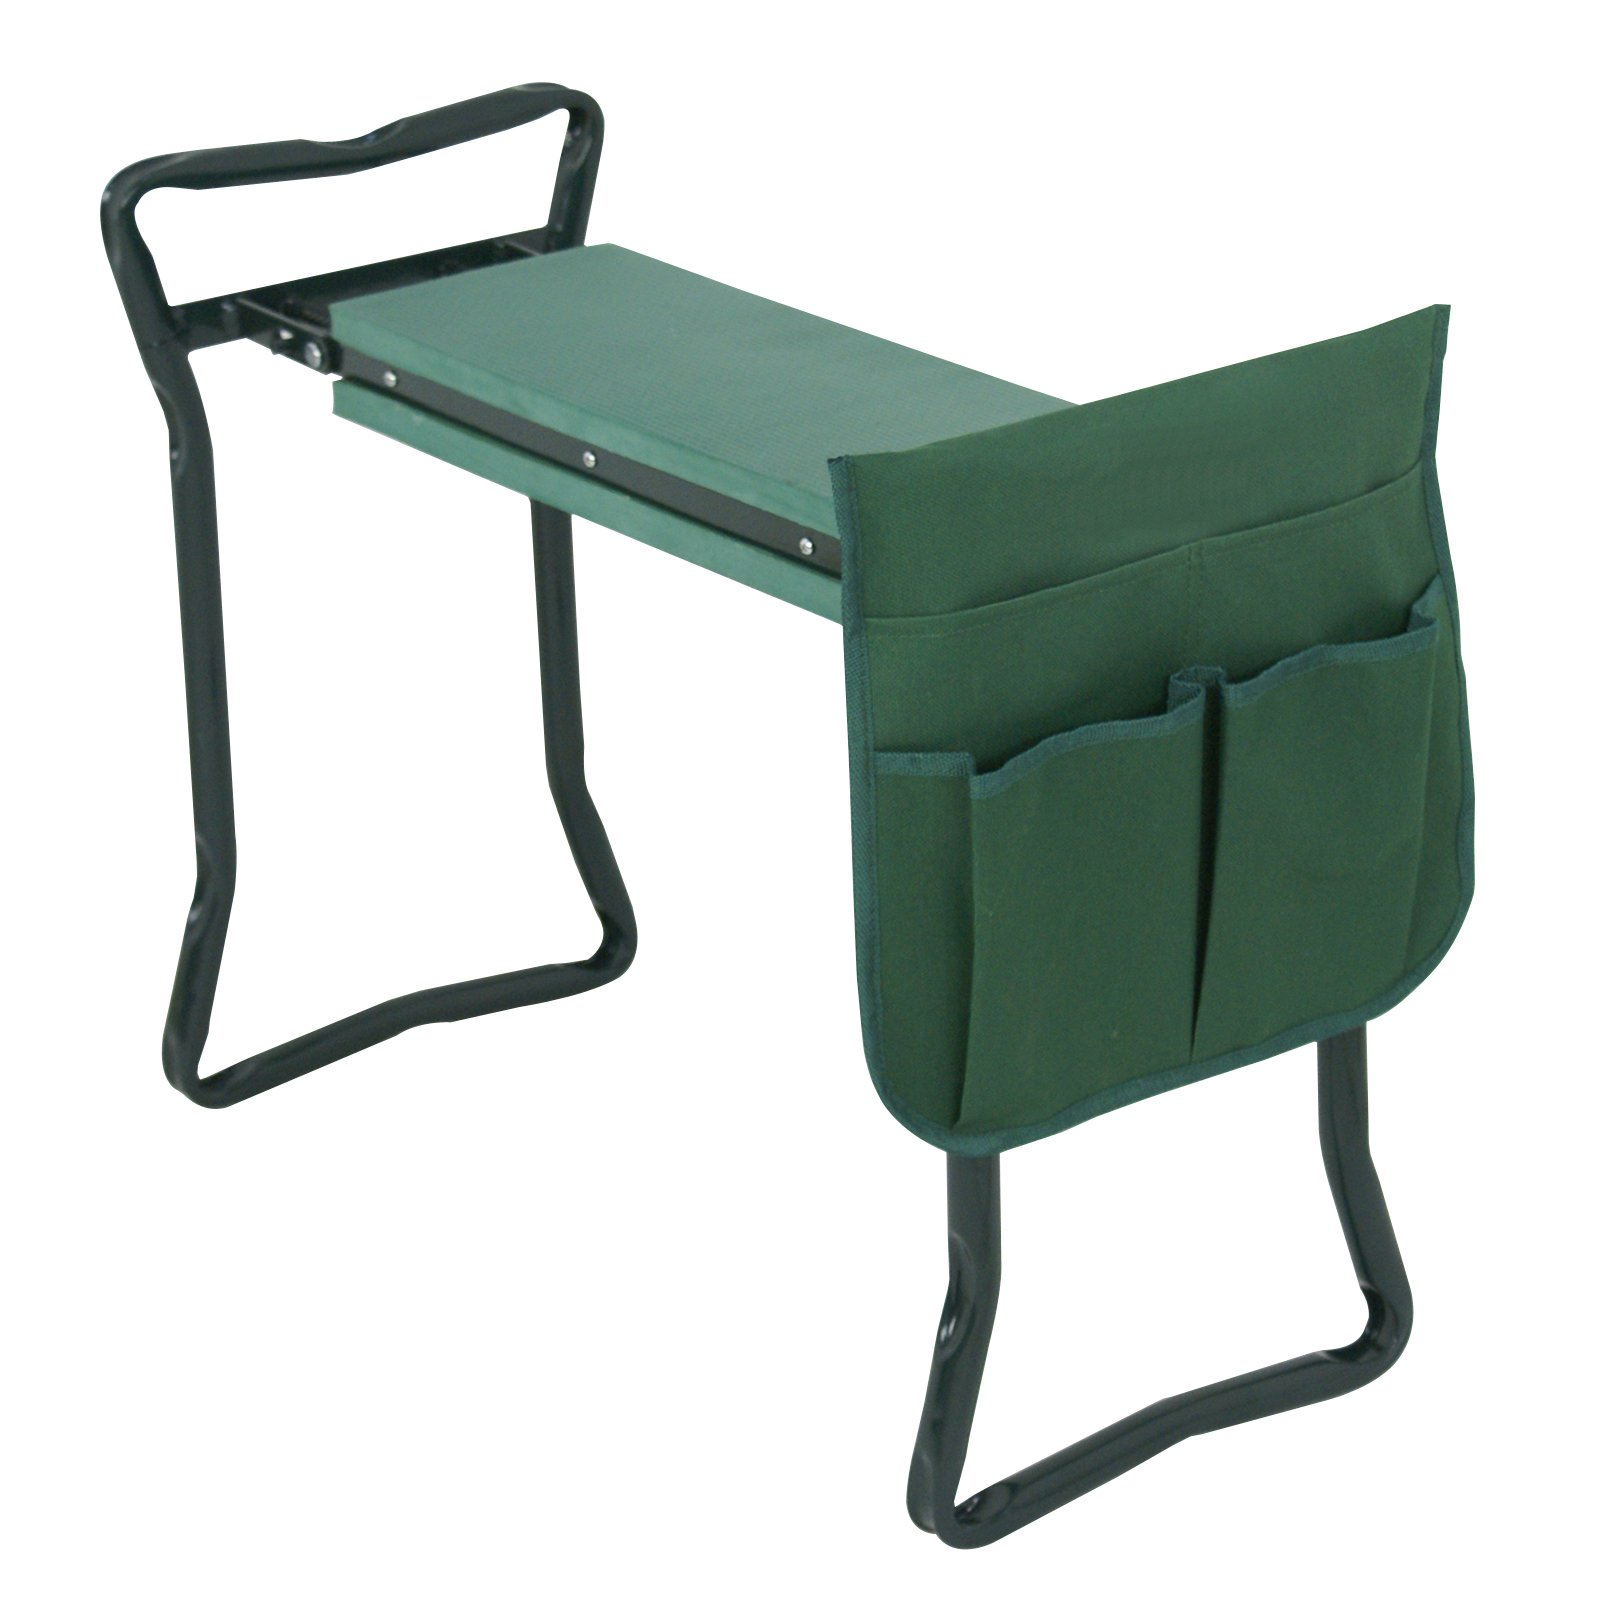 Nova Microdermabrasion Folding Garden Kneeler Seat Stool W/EVA Foam Pad and Tool Bag Pouch Portable Garden Bench Garden Stool Sturdy and Lightweight